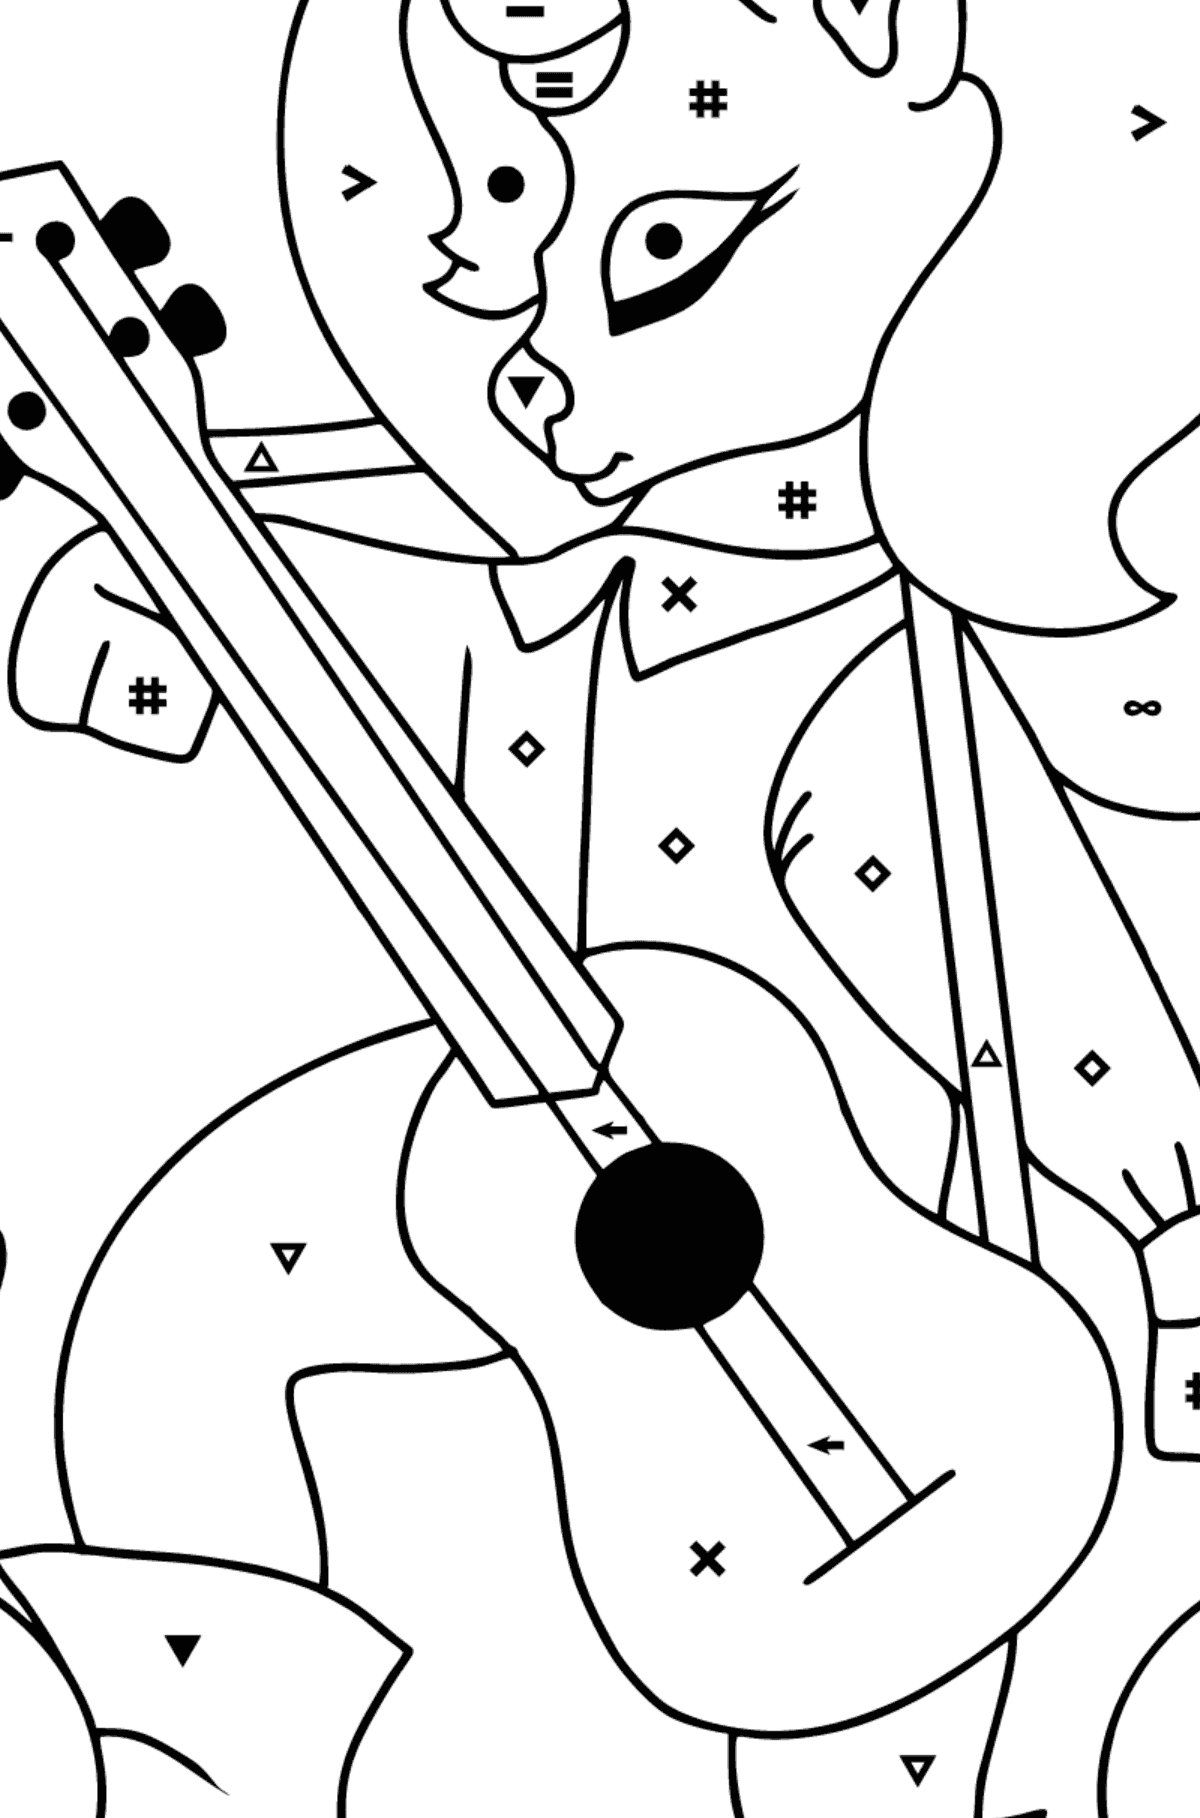 Complex Coloring Page - A Unicorn with a Guitar for Kids  - Color by Special Symbols